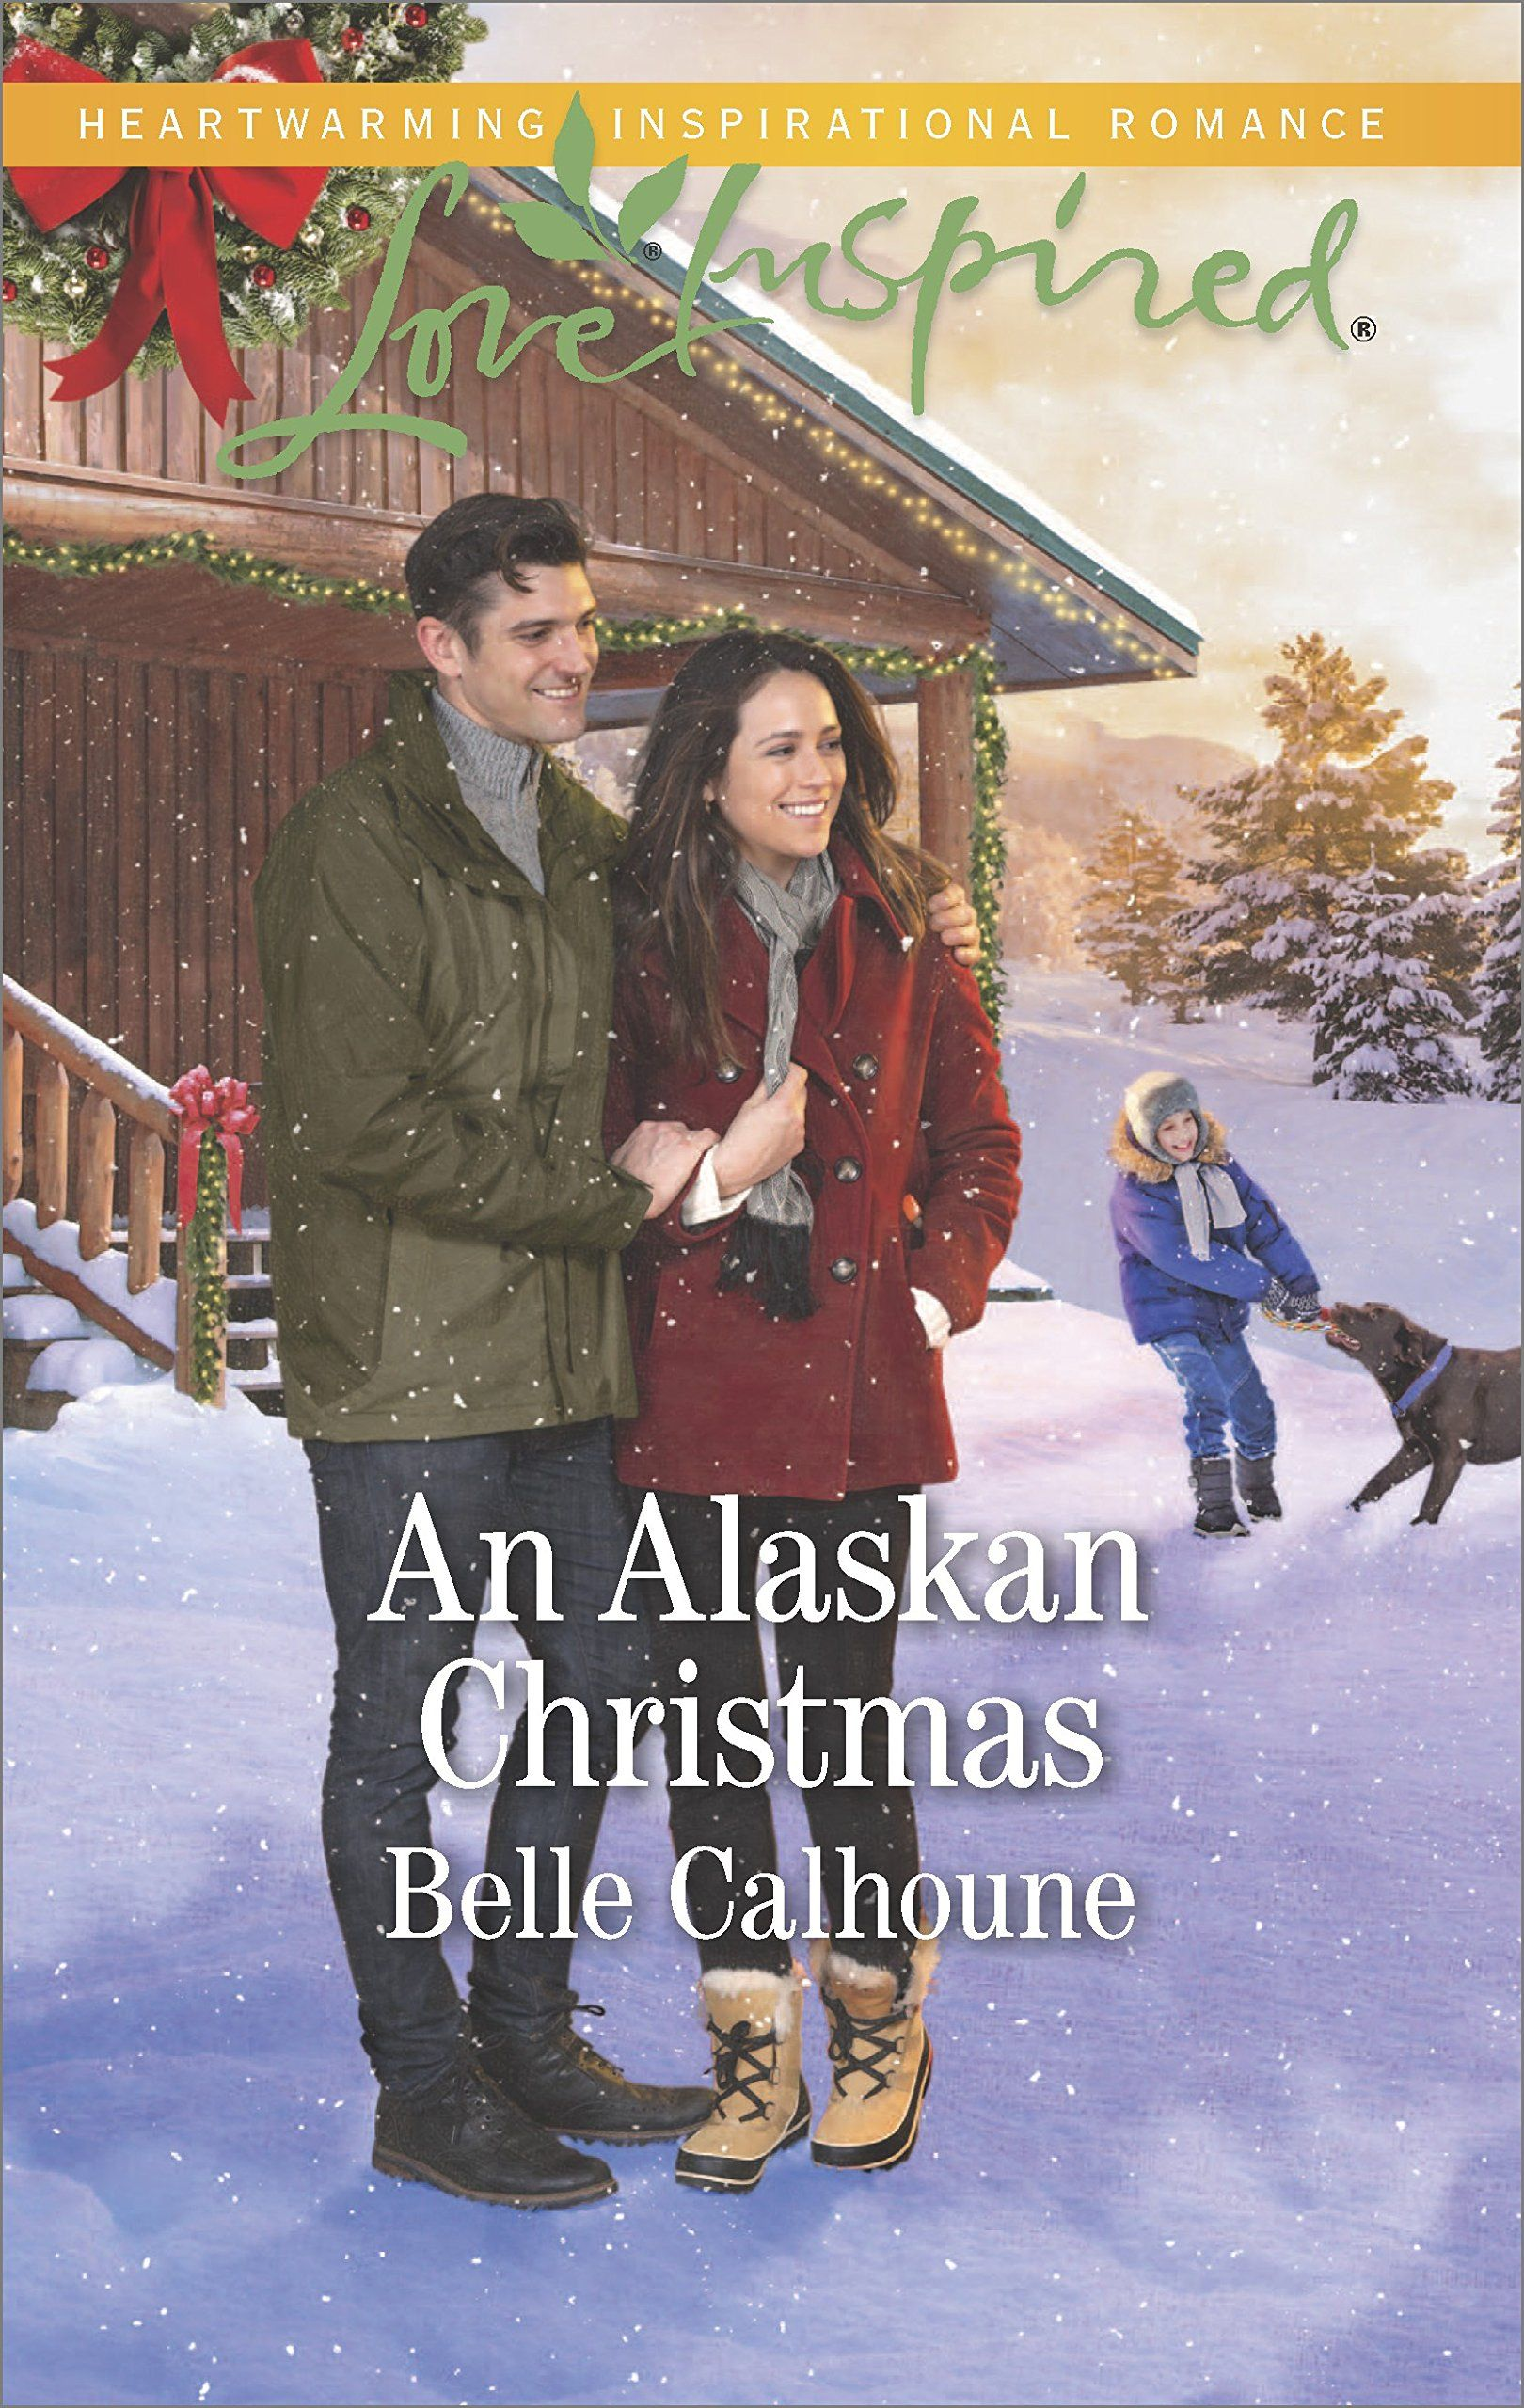 Belle Calhoune - An Alaskan Christmas / https://www.goodreads.com/book/show/34540381-a-baby-for-the-doctor?ac=1&from_search=true#